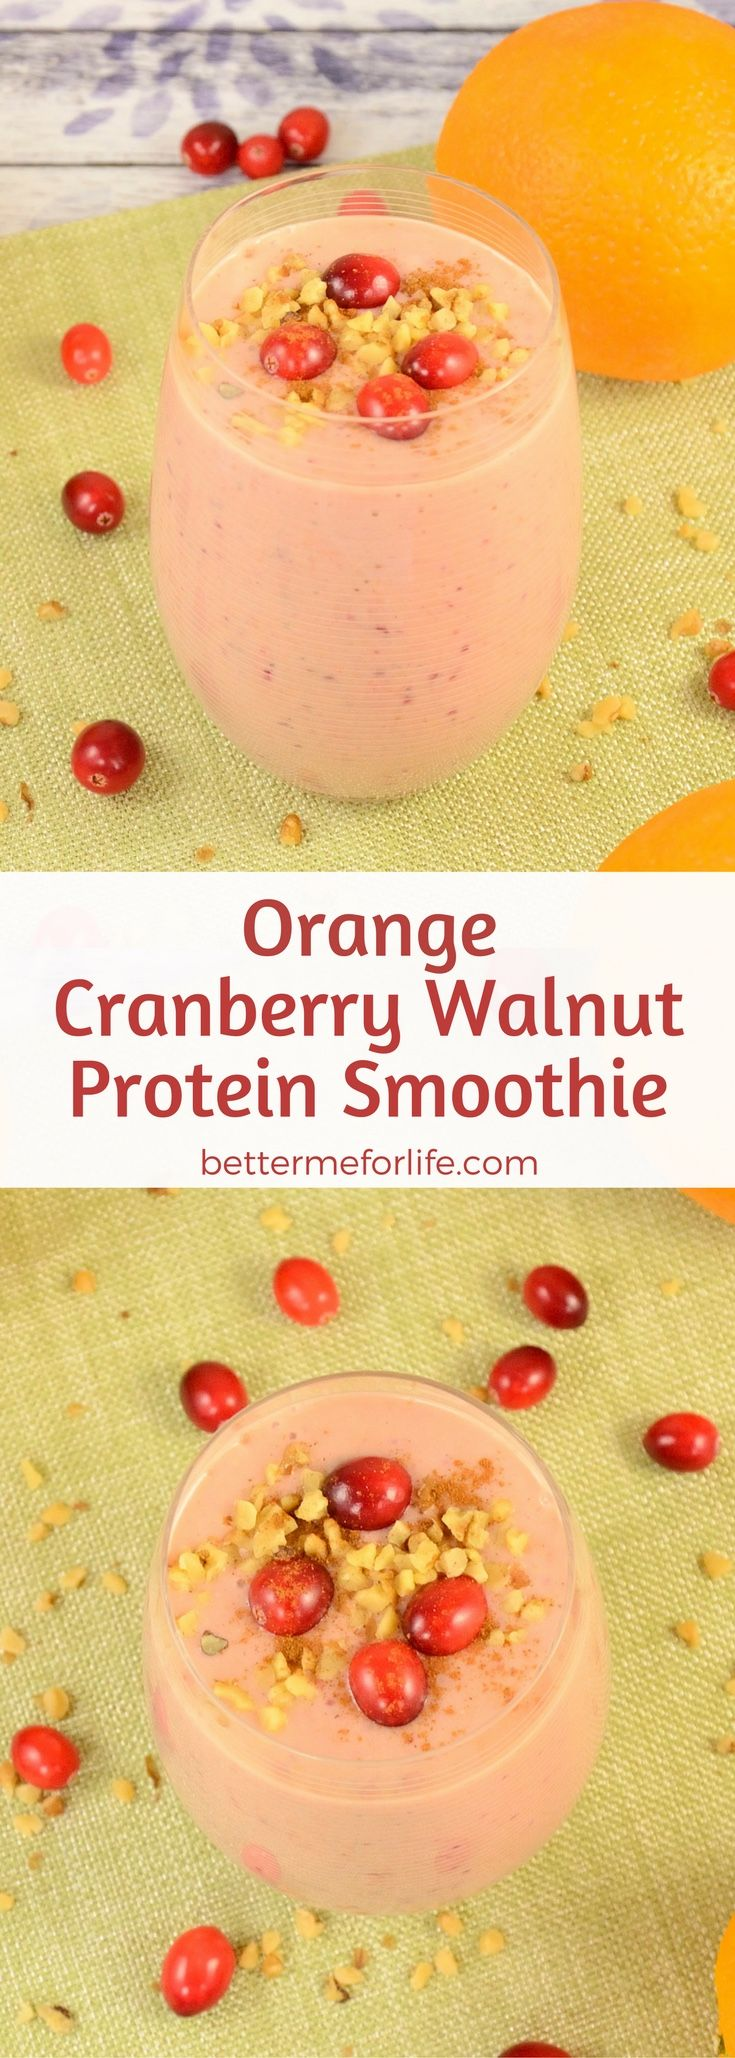 Packed with fiber, this delicious cranberry orange walnut protein smoothie will keep you feeling full for a long time. Who knew losing weight could taste so good? Recipe at BetterMeforLife.com | protein smoothie recipes | protein smoothies | healthy protein smoothies | protein smoothies for weight loss | protein smoothie recipes | protein smoothie recipes weight loss | protein smoothie recipes diet #proteinsmoothies #proteinsmoothierecipes #proteinpowder #proteinsmoothie #protein_smoothie